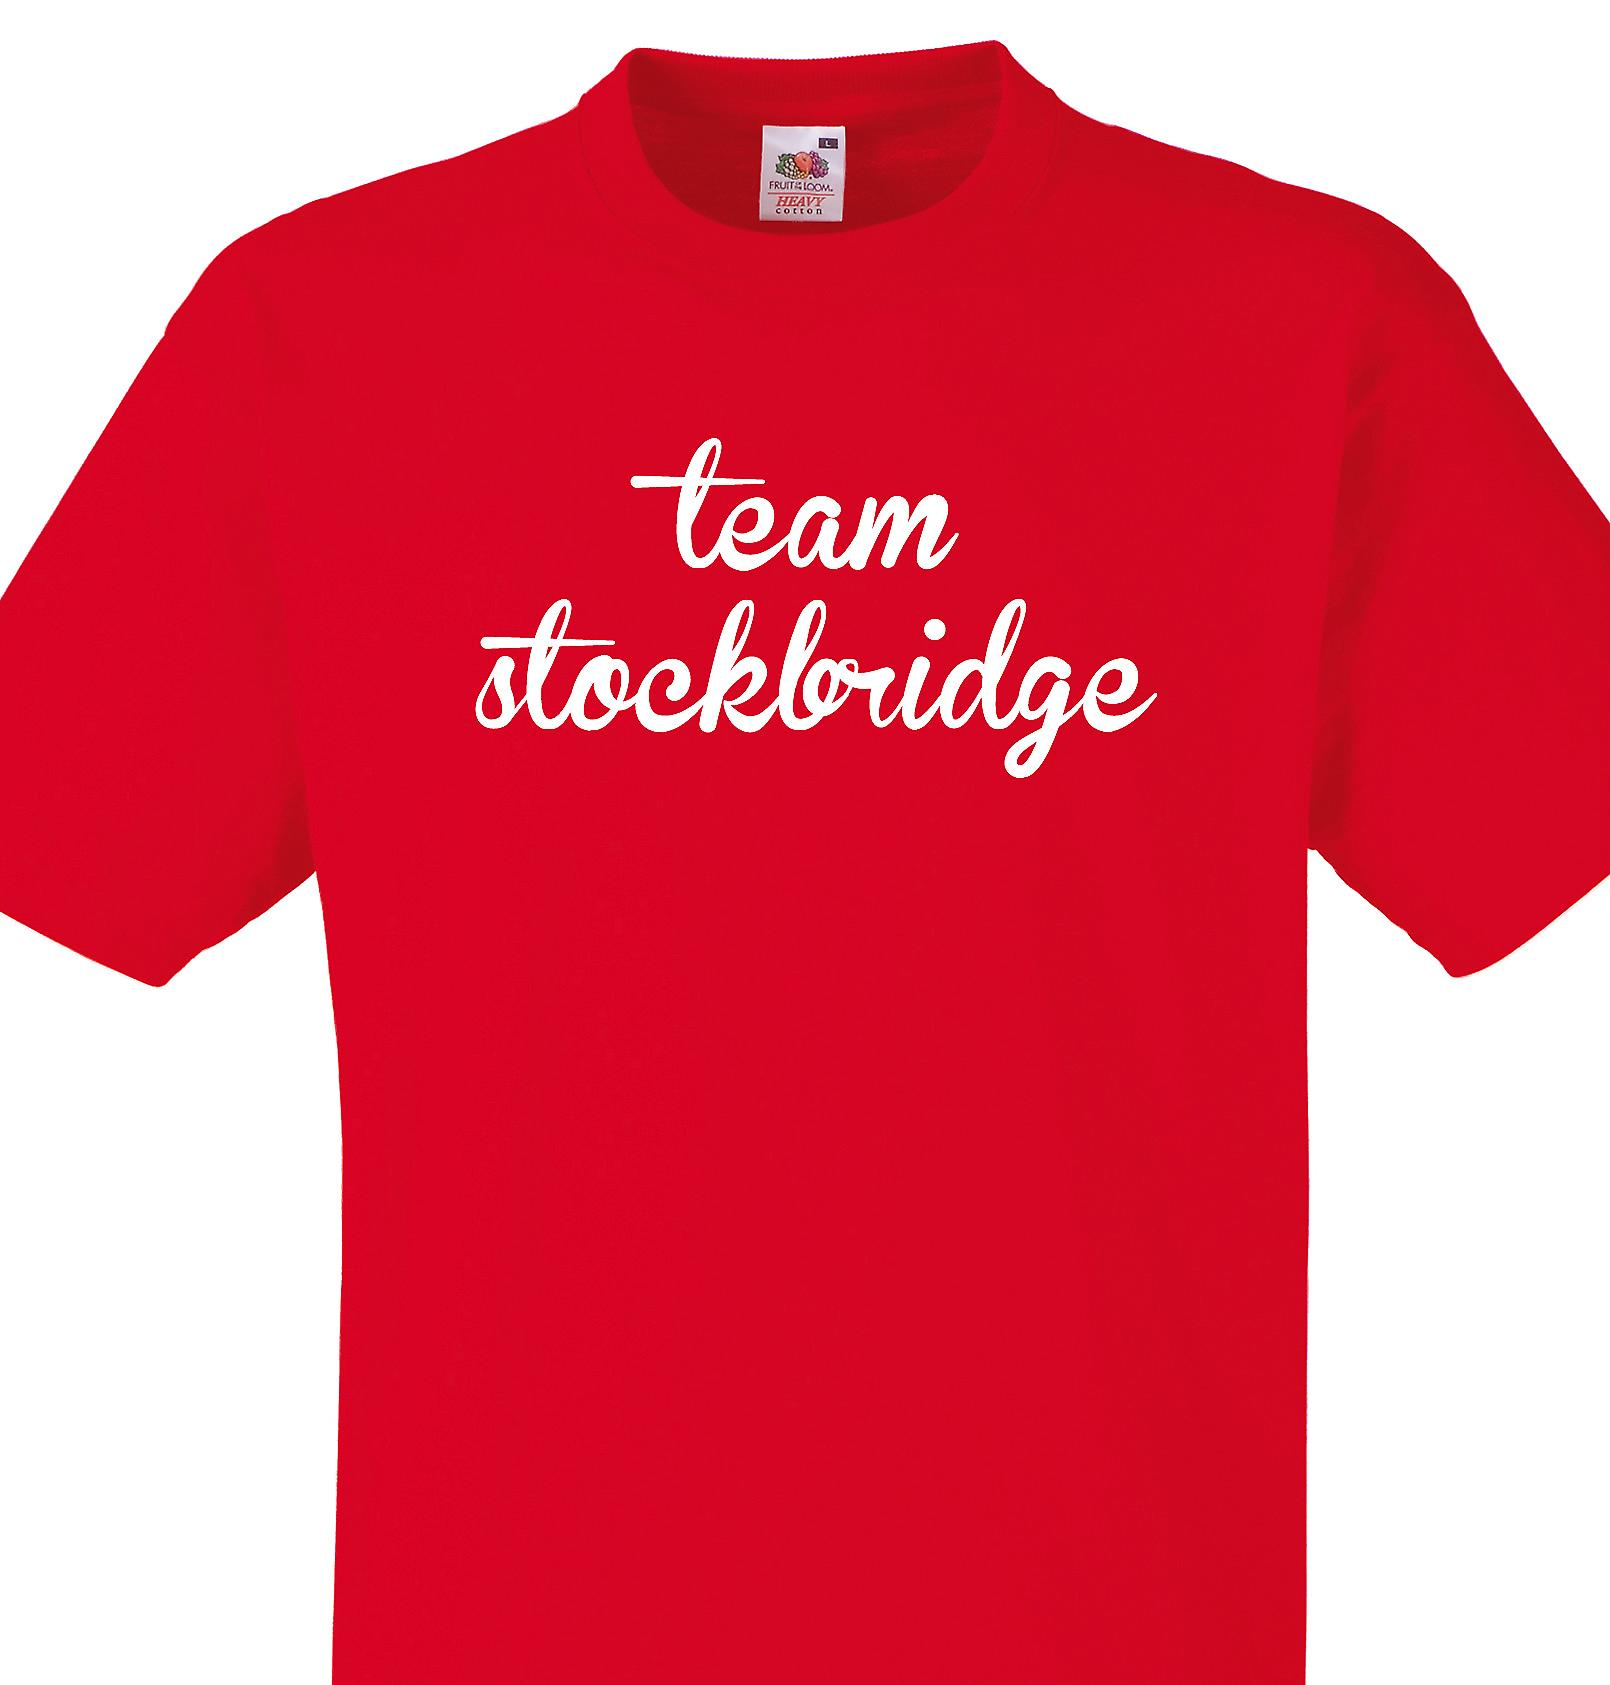 Team Stockbridge Red T shirt